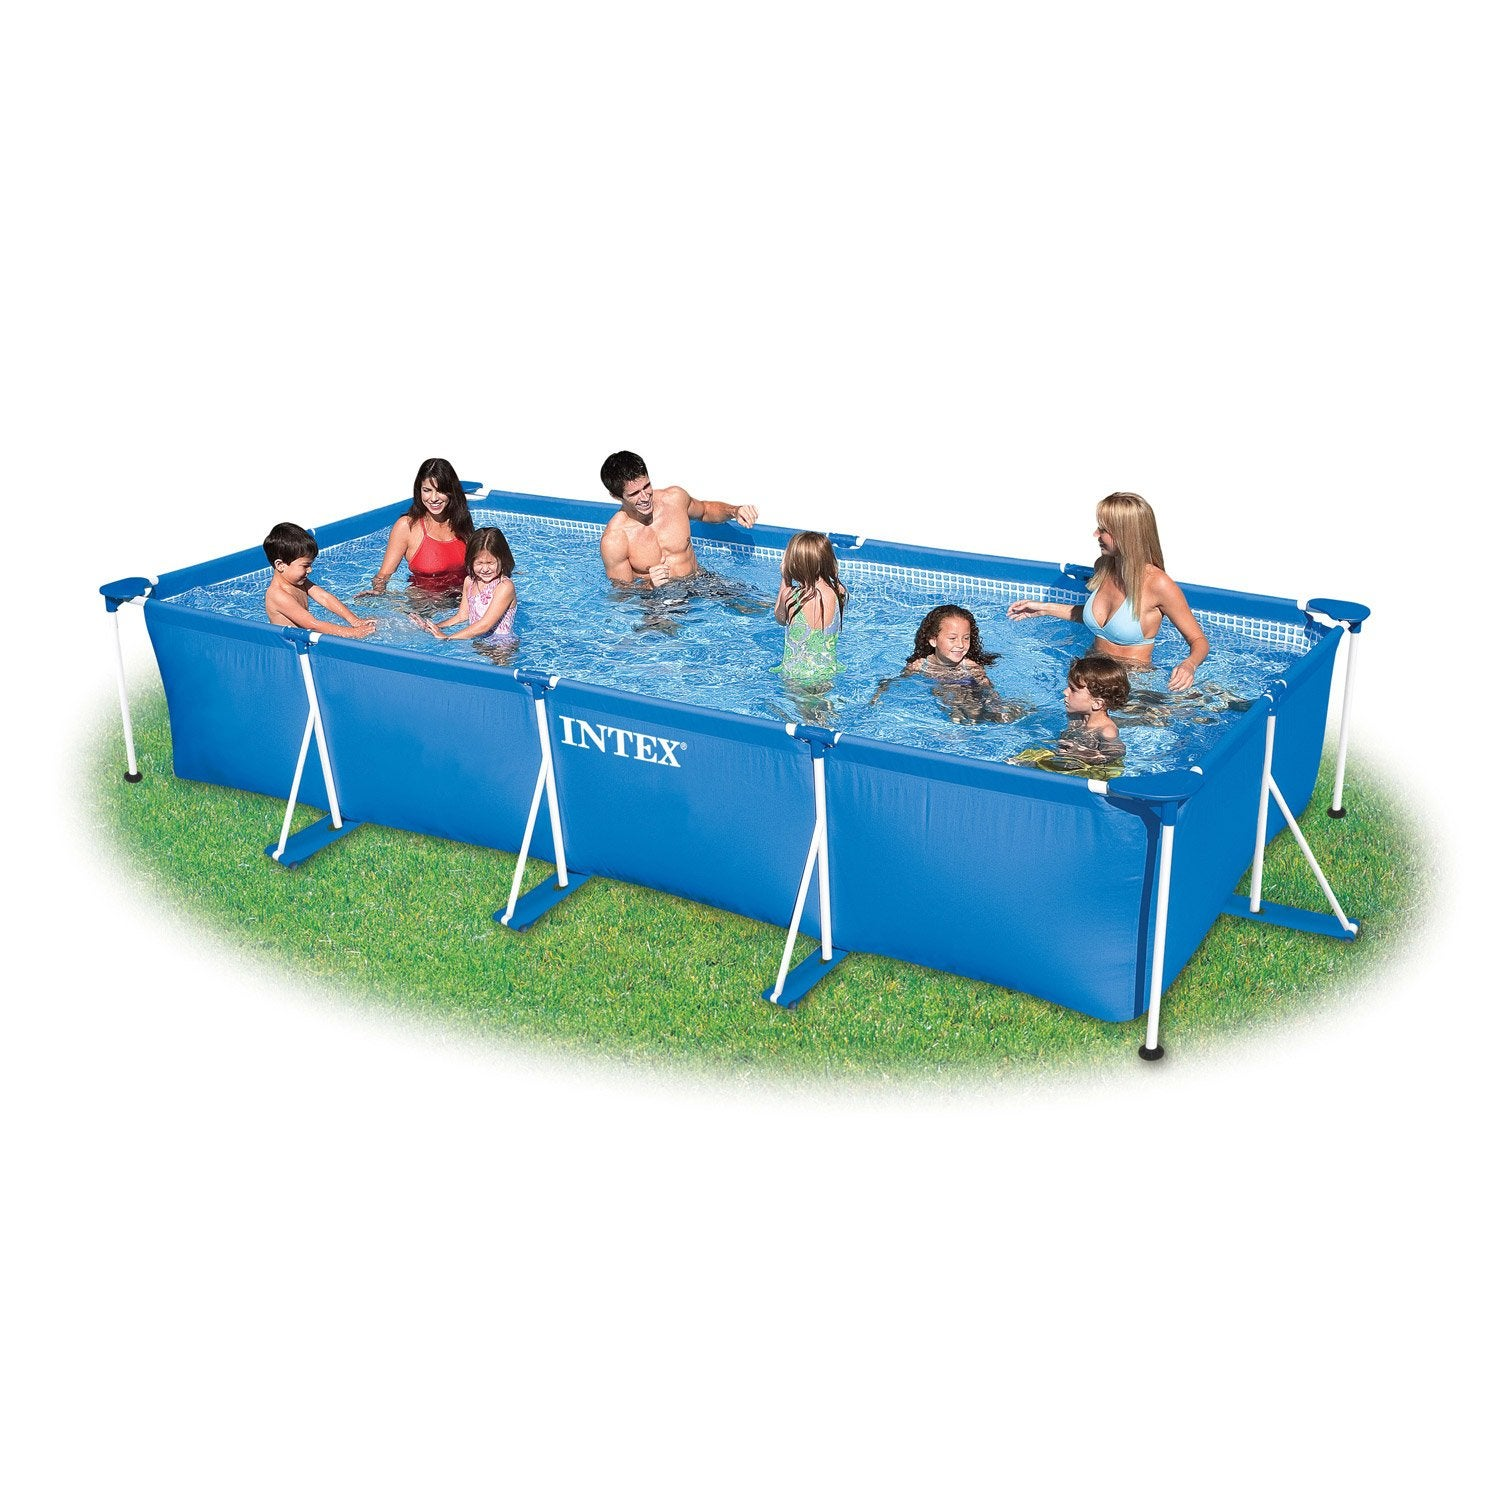 Piscine hors sol autoportante tubulaire intex l x l for Piscine hors sol enterrable